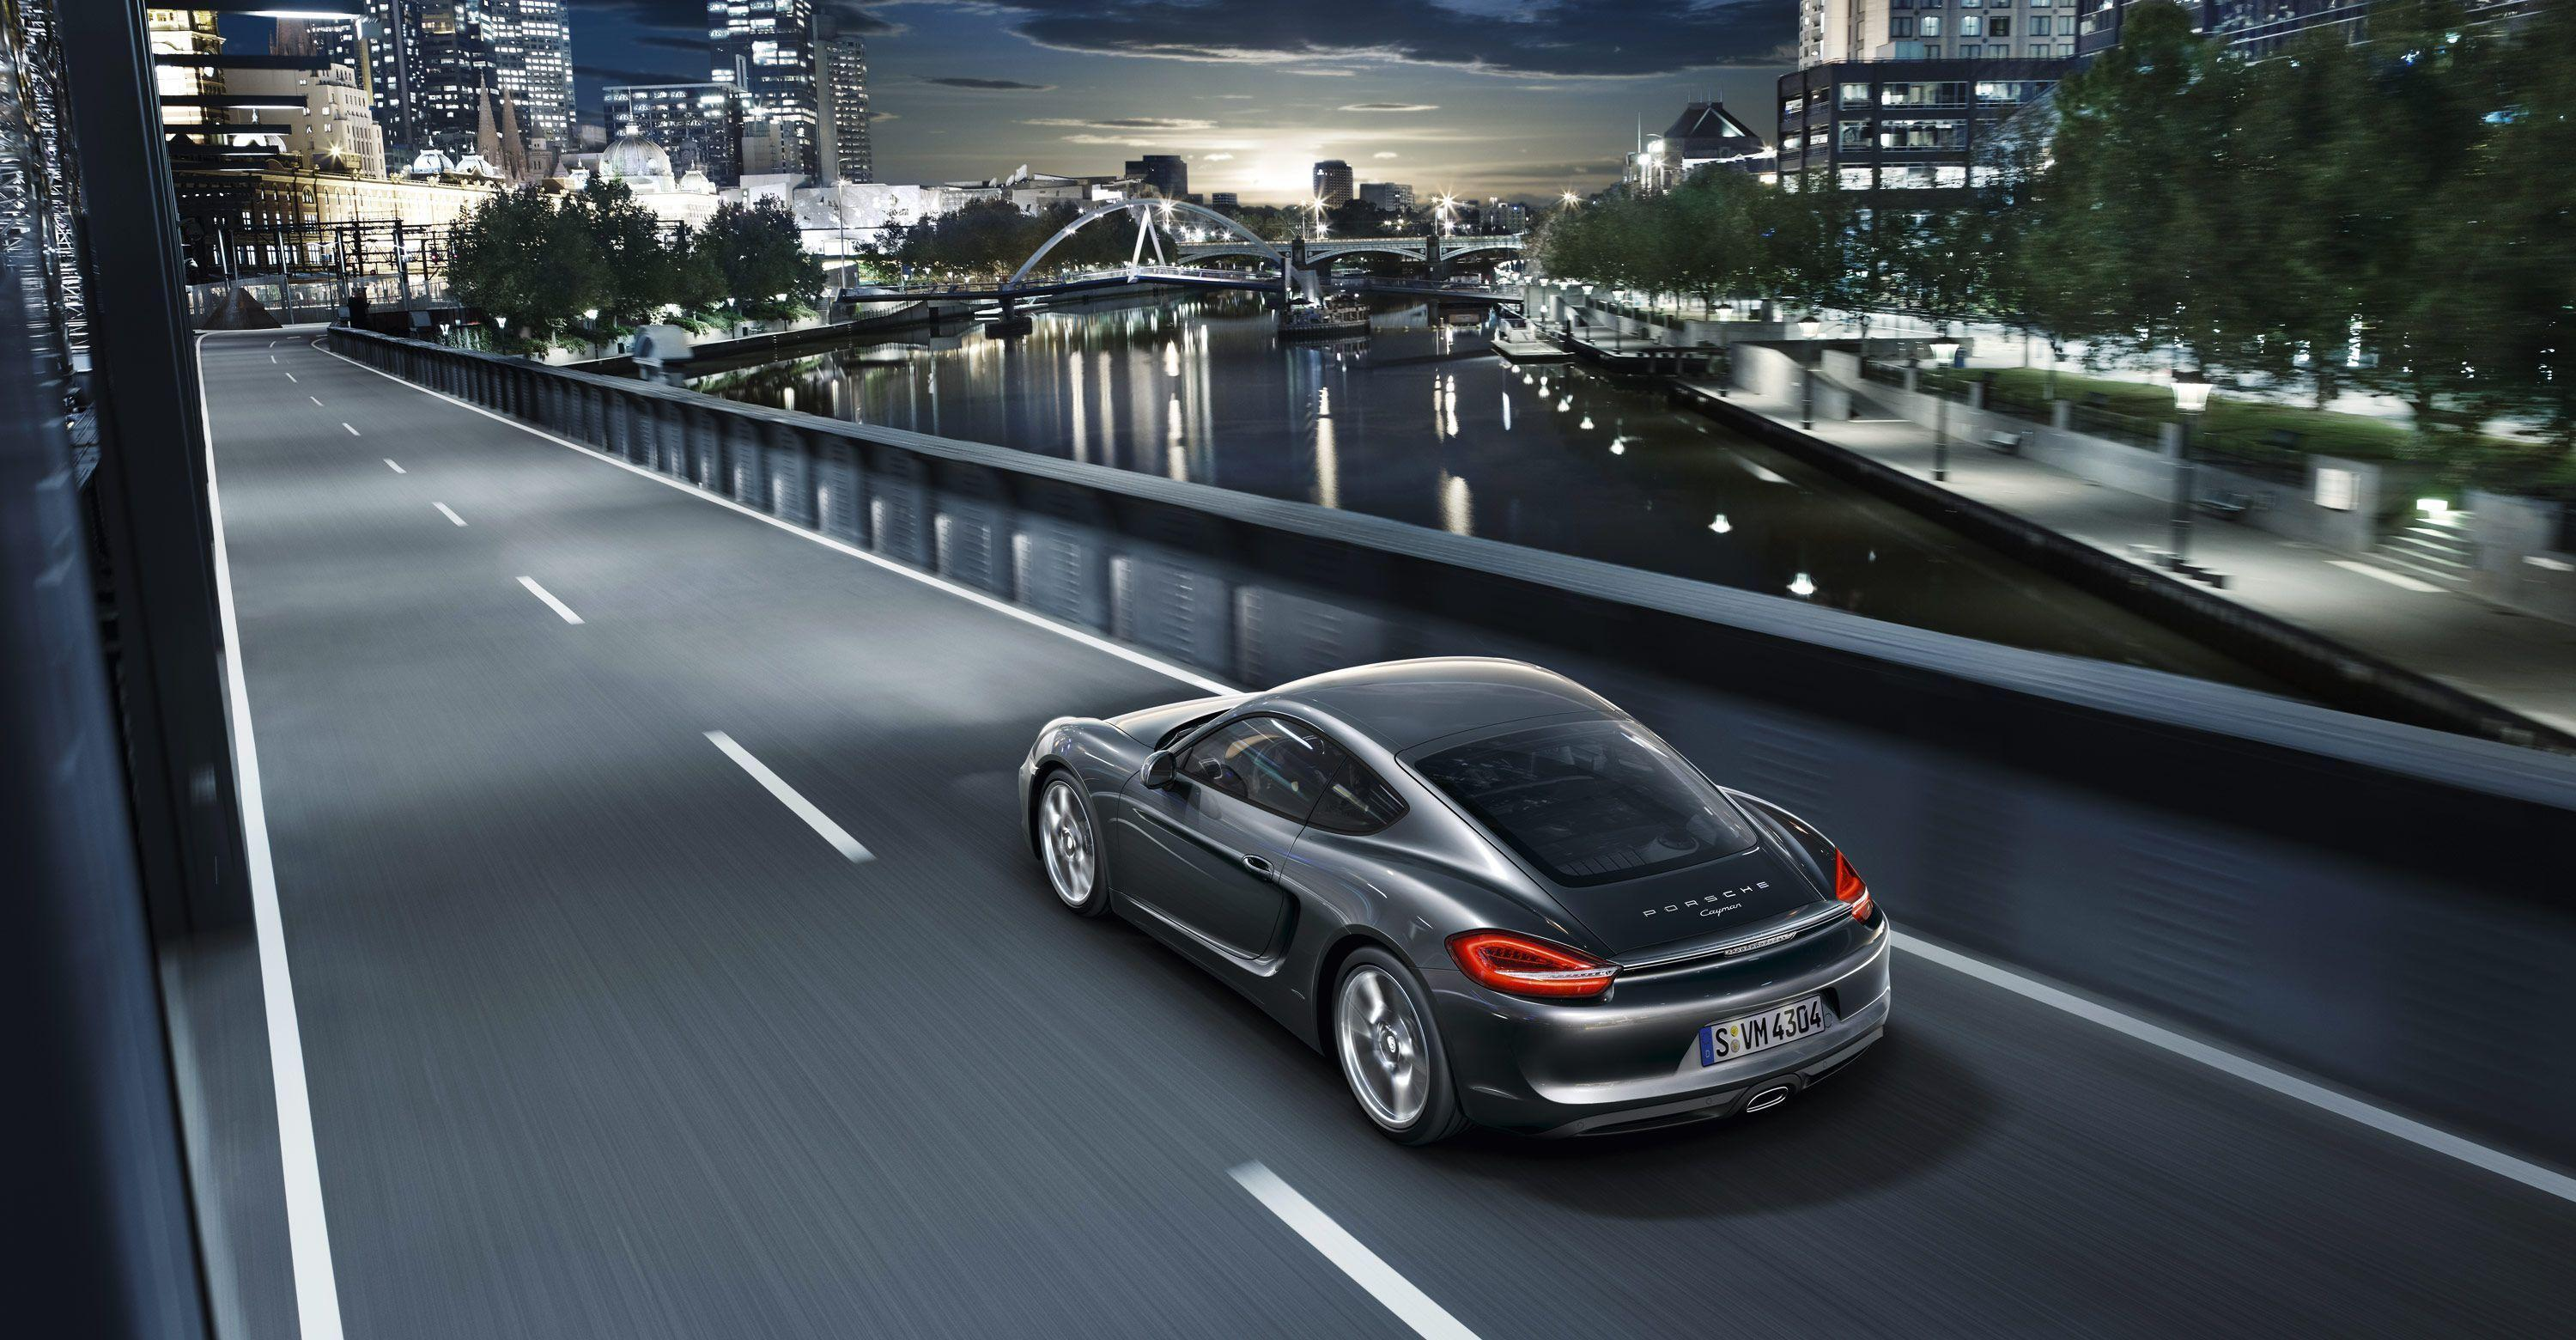 Nothing found for Porsche Cayman S Wallpapers 2013 Best Wallpaper Fan